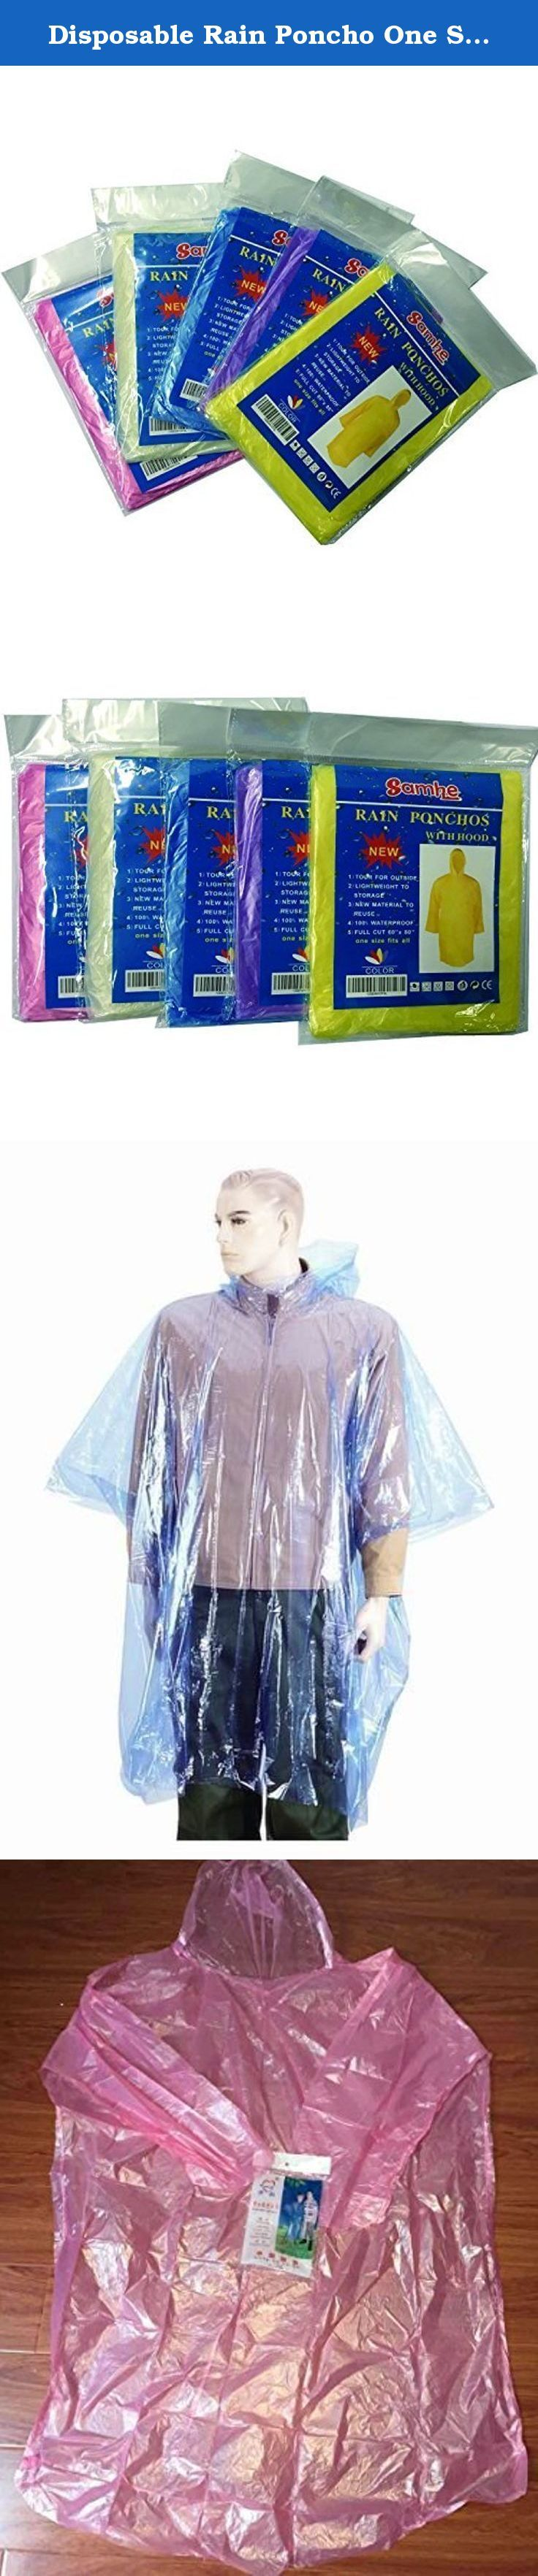 Disposable Rain Poncho One Size Fit All with Hood 10 Per Pack Random Color. separate packing ,Easy to use and easy to store Emergency Poncho, Emergency Rain Gear, Weather Protection One size fit all. It has an attached hood. Perfect for camping, day pack or emergency kit.